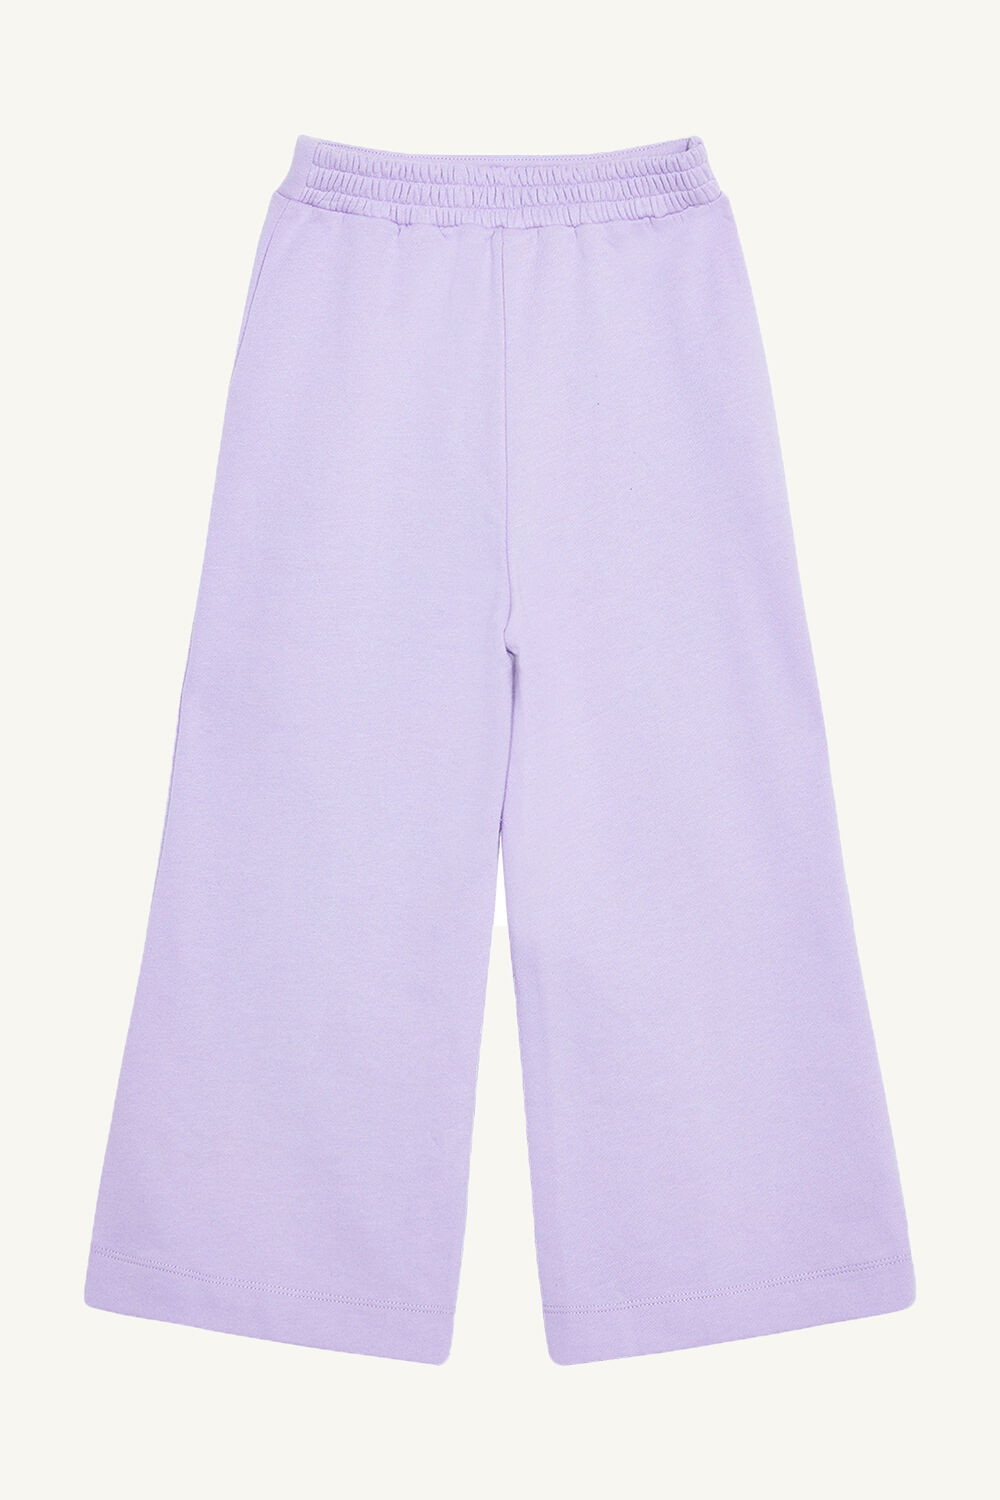 TWEEN GIRL TAILORED TRACK PANT in colour LILAC CHIFFON